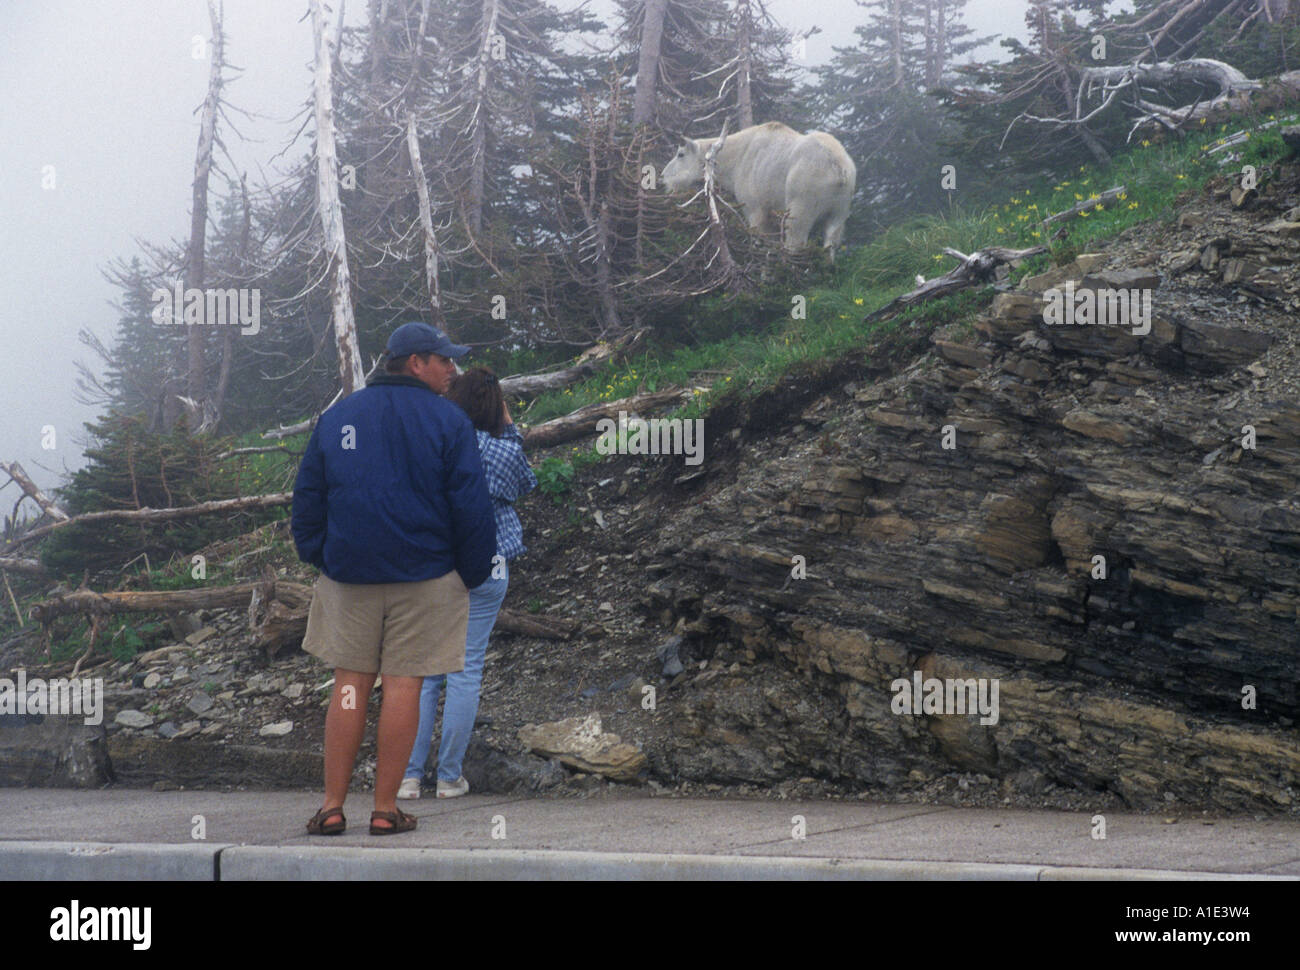 Park visitors admiring a mountain goat at Logan s Pass in Glacier National Park Montana United States of AmericaStock Photo